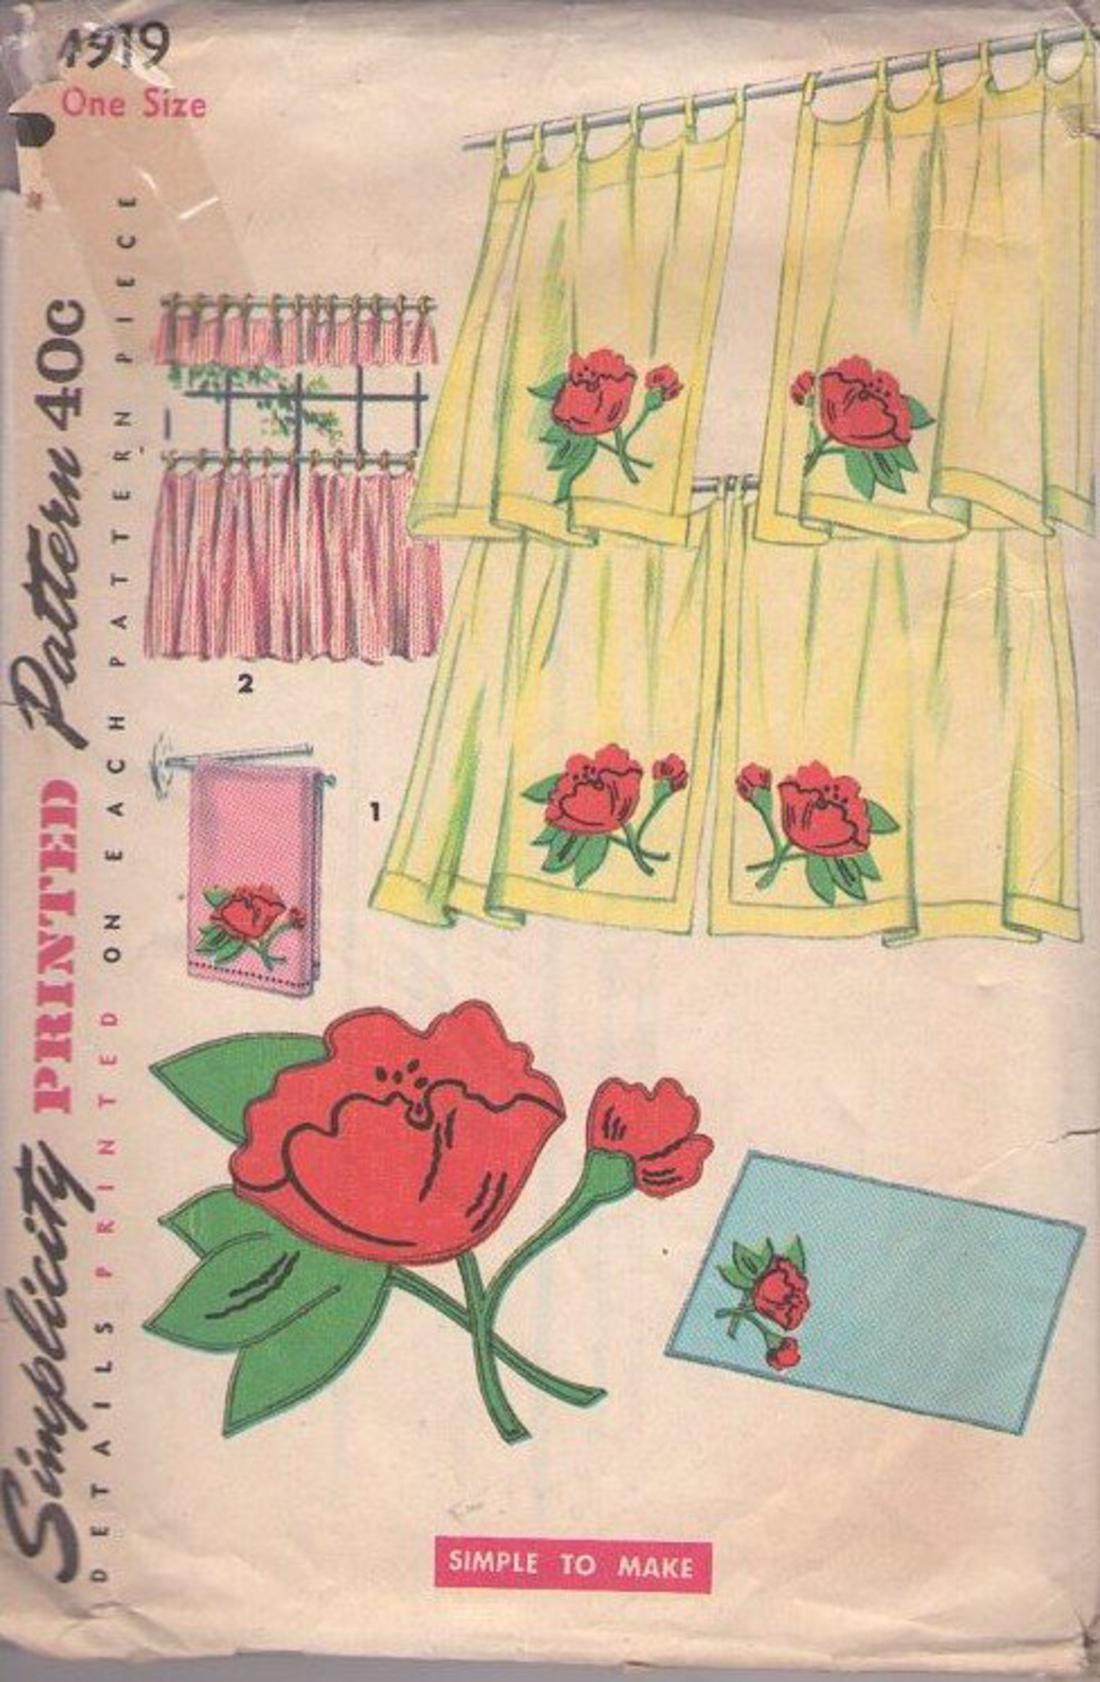 Momspatterns Vintage Sewing Patterns Simplicity 4919 50 S Pattern Eames Era Retro Kitchen Cafe Curtains Window Coverings Poppy Applique Cut